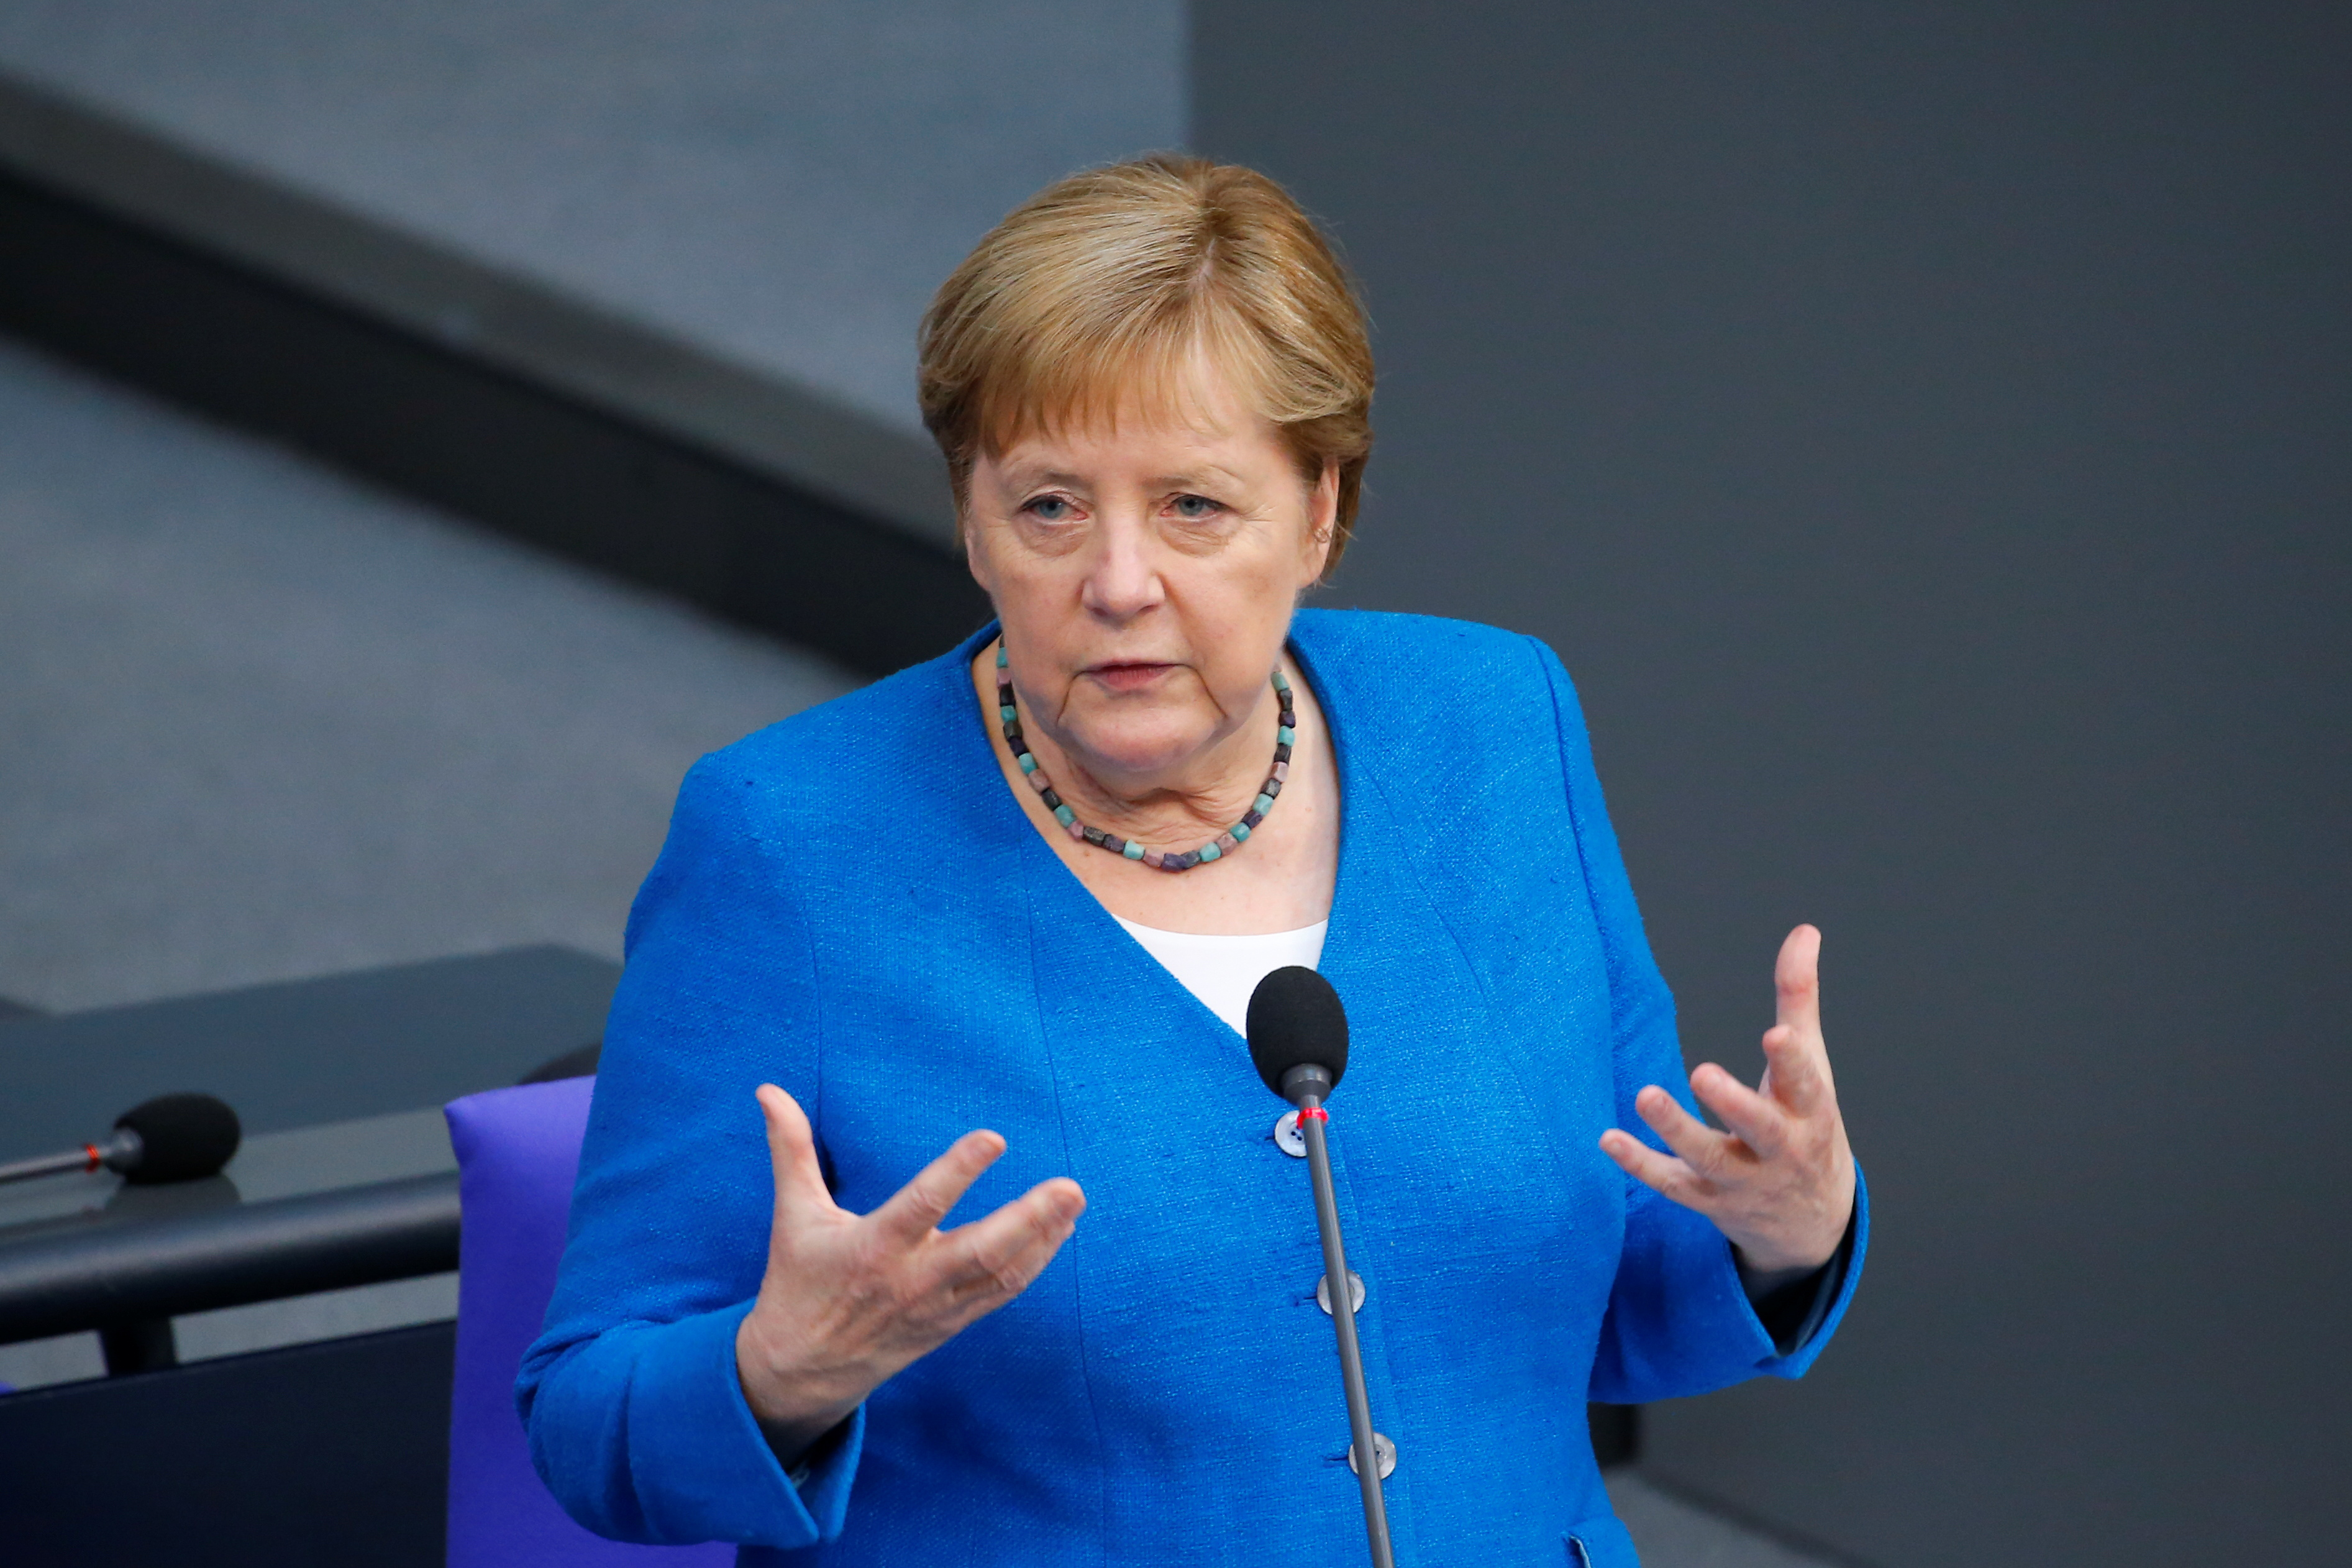 German Chancellor Angela Merkel speaks during the last session of the lower house of parliament Bundestag before federal elections, in Berlin, Germany, June 23, 2021. REUTERS/Michele Tantussi